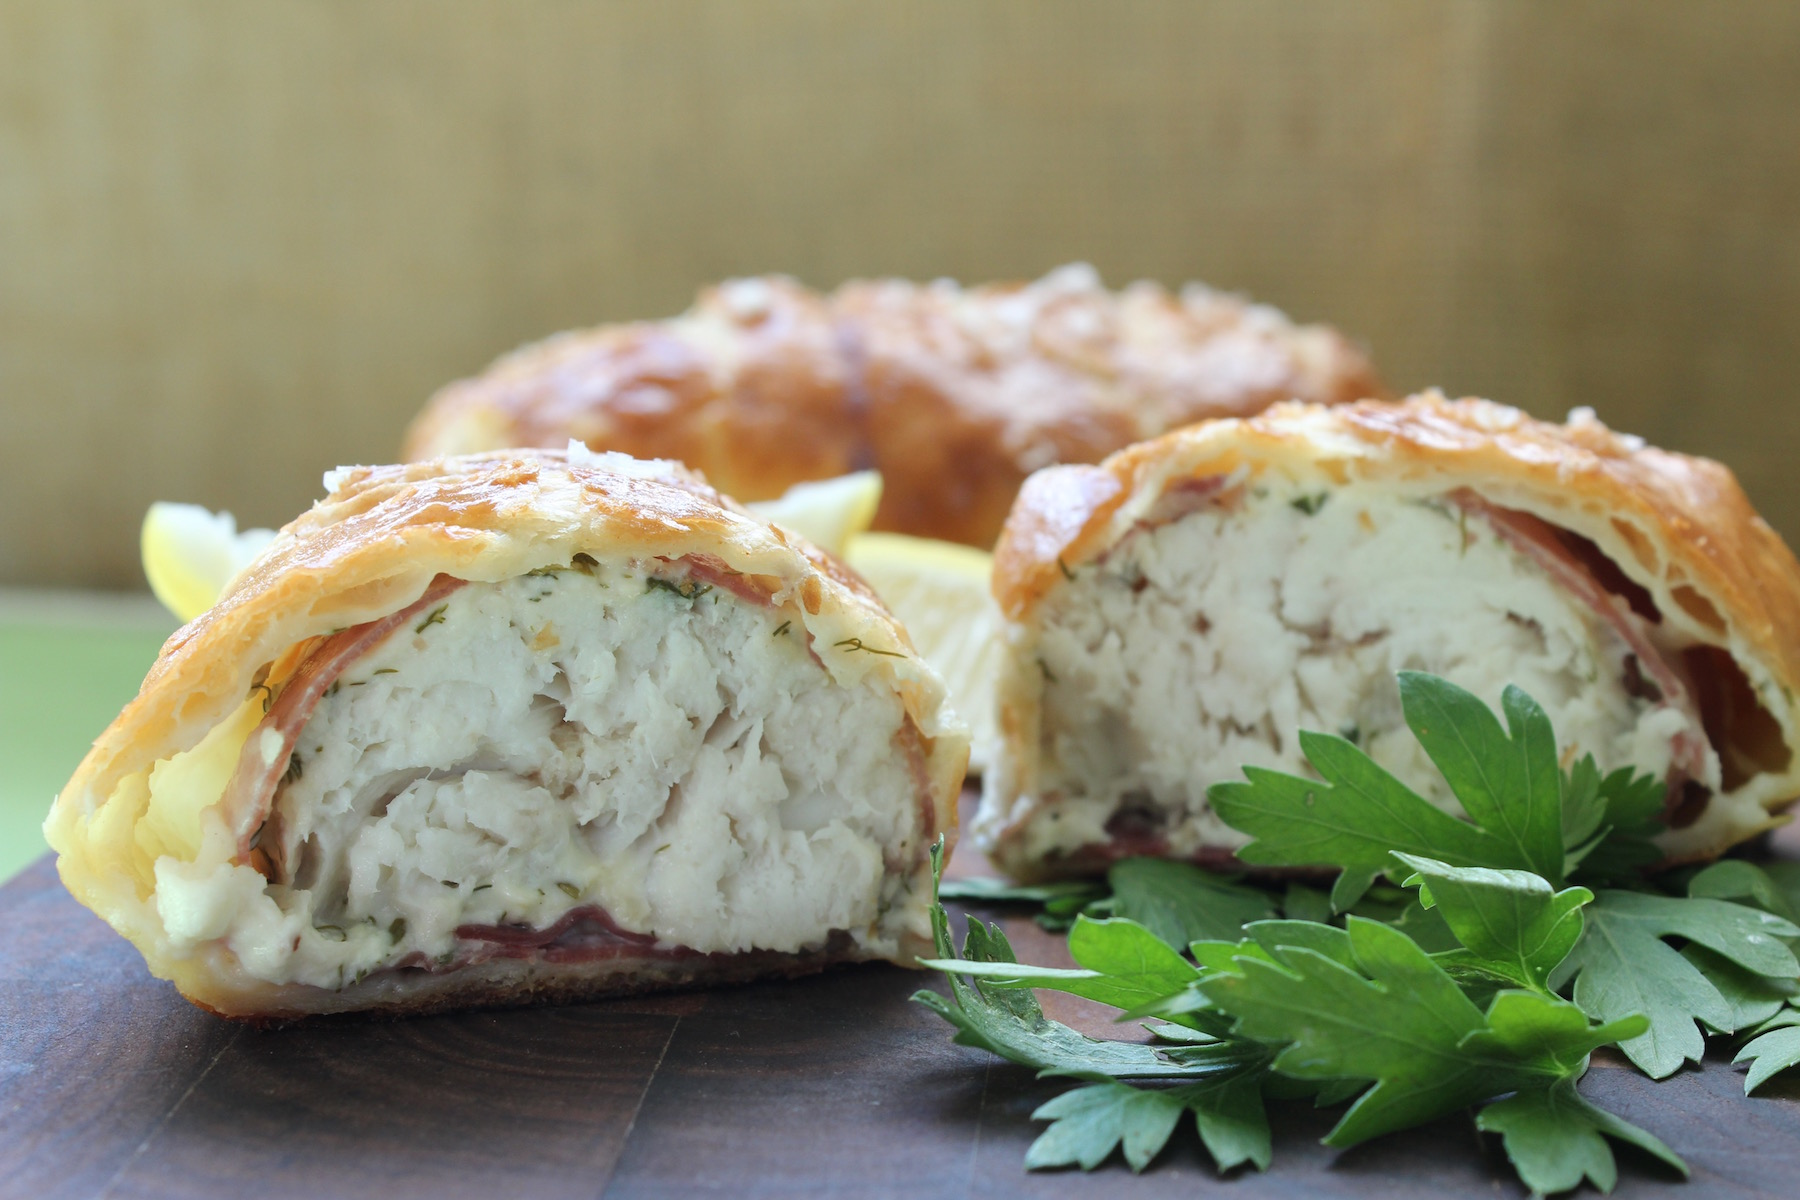 Fish wrapped in pastry